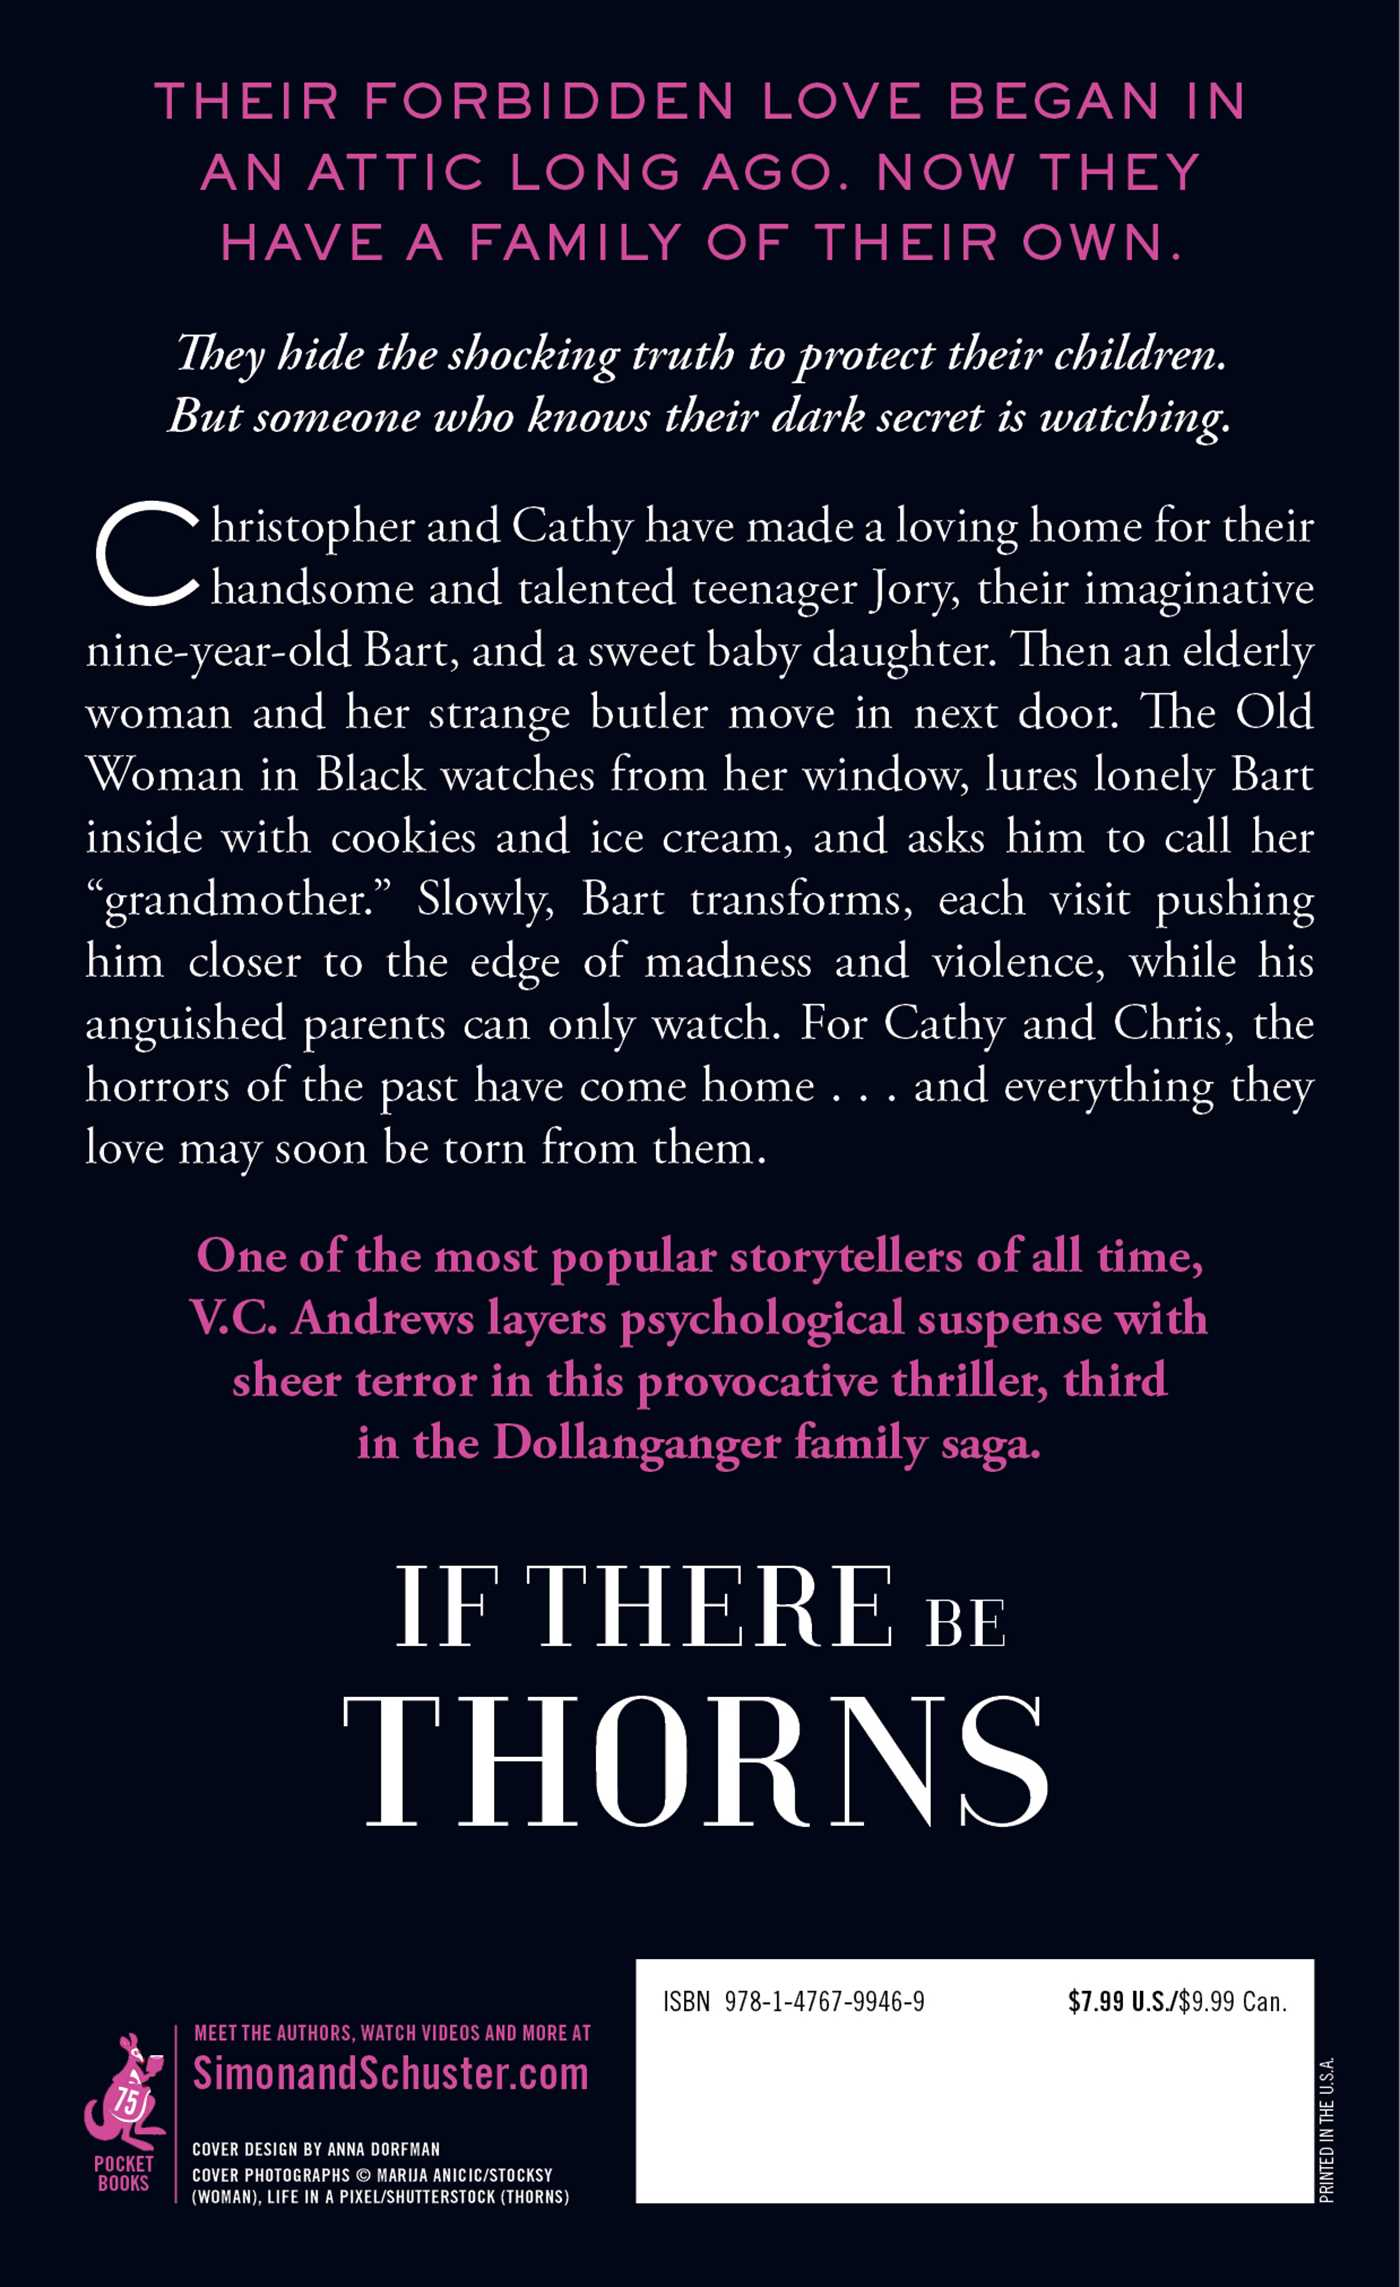 If There Be Thorns Book by V C Andrews ficial Publisher Page